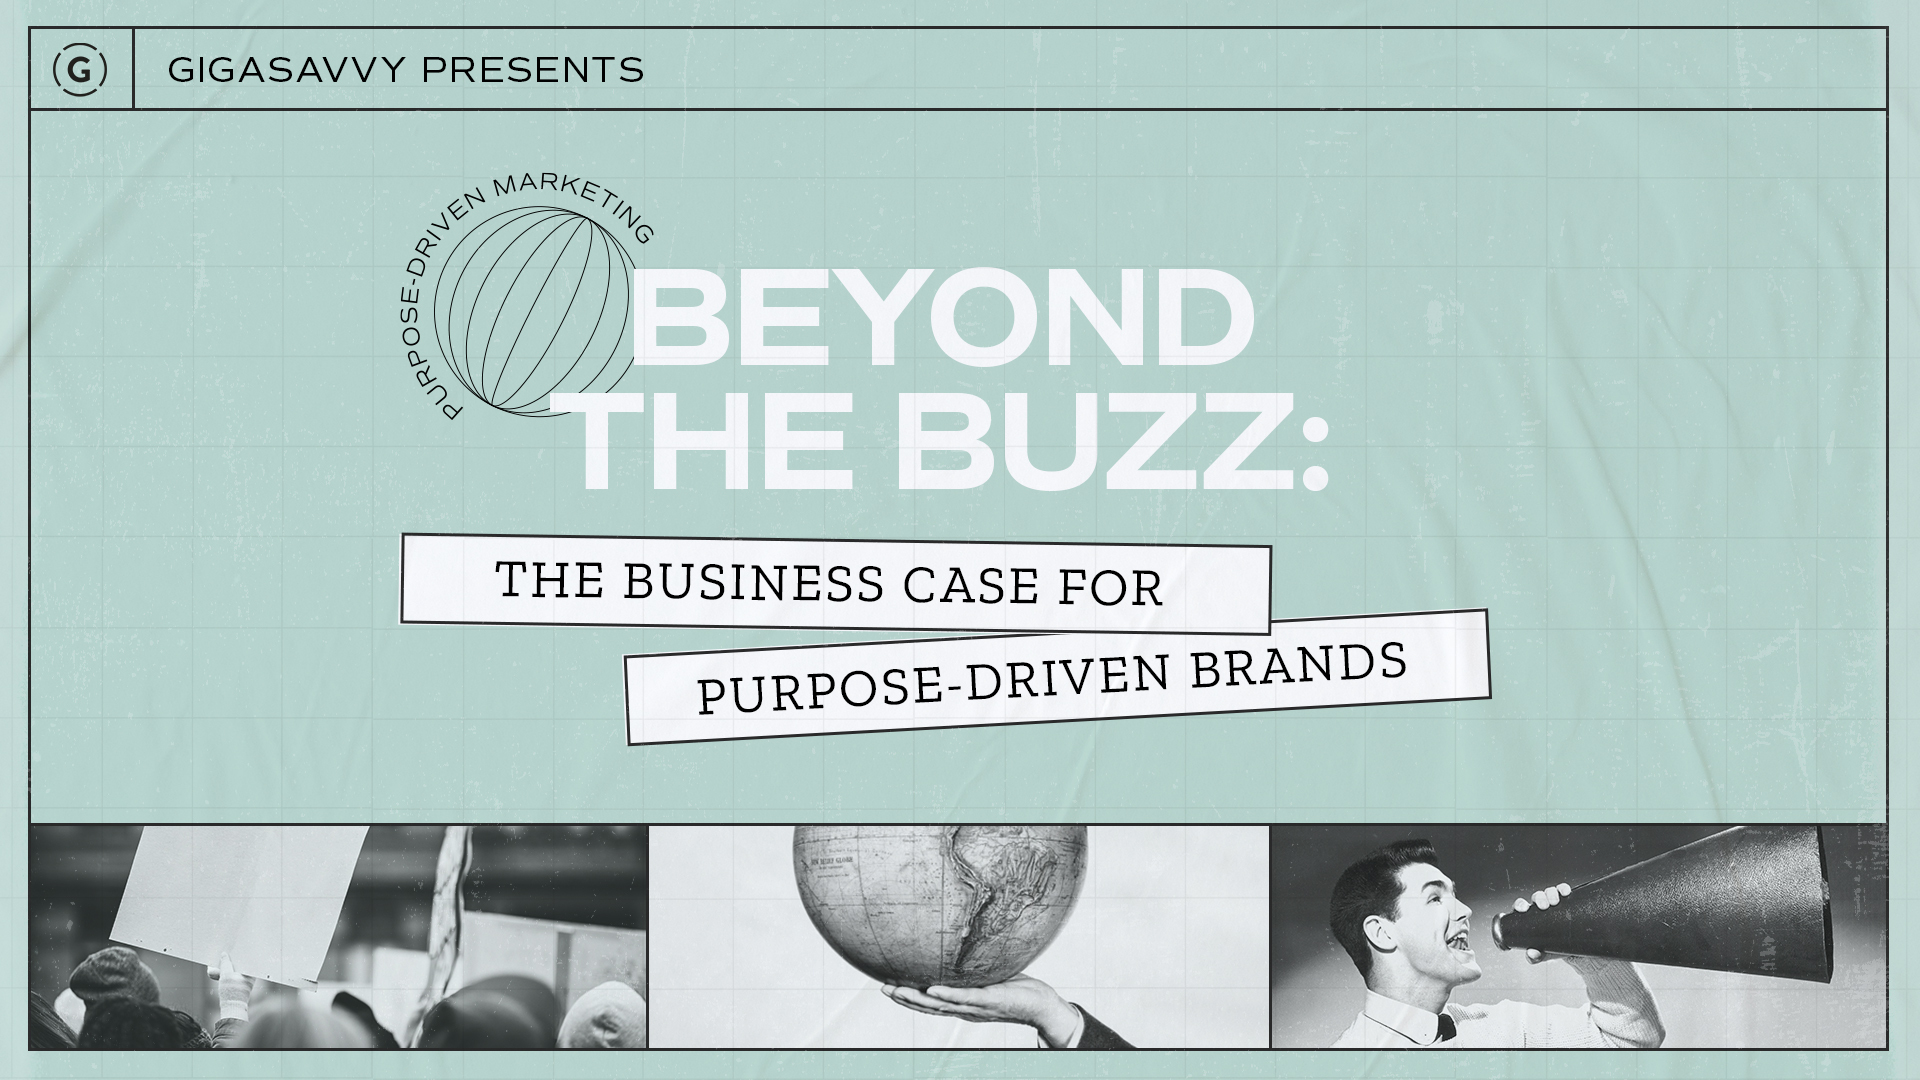 Beyond the Buzz: The Business Case for Purpose-Driven Brands